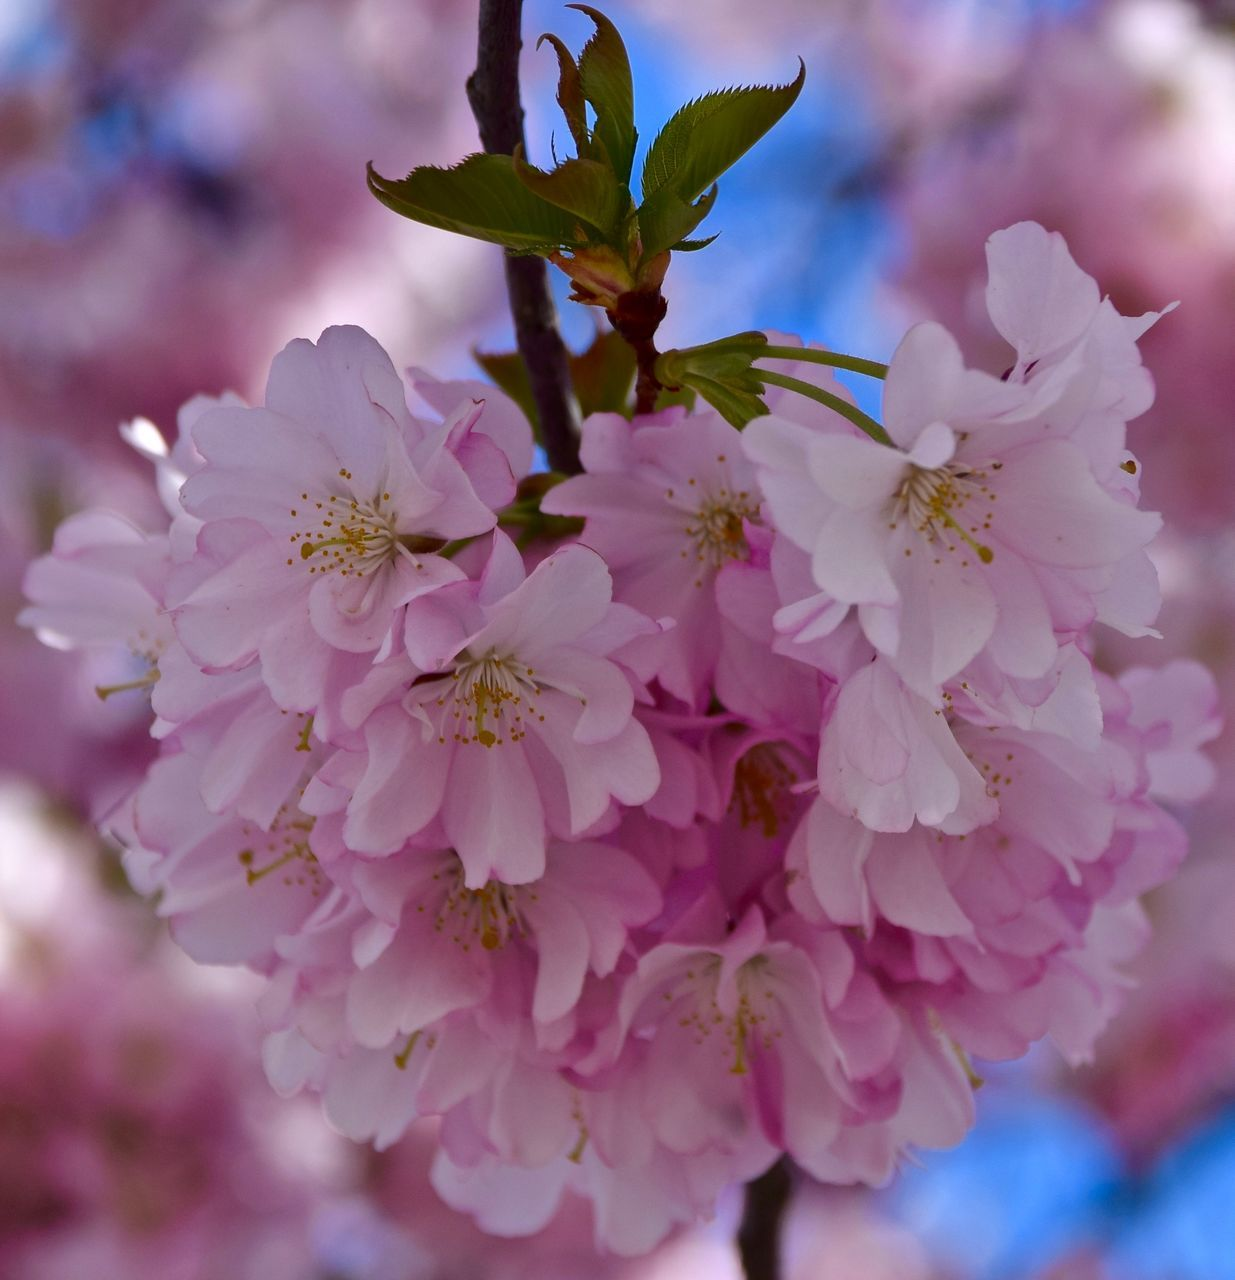 flower, nature, beauty in nature, petal, growth, fragility, no people, freshness, plant, blossom, close-up, flower head, outdoors, pink color, blooming, day, springtime